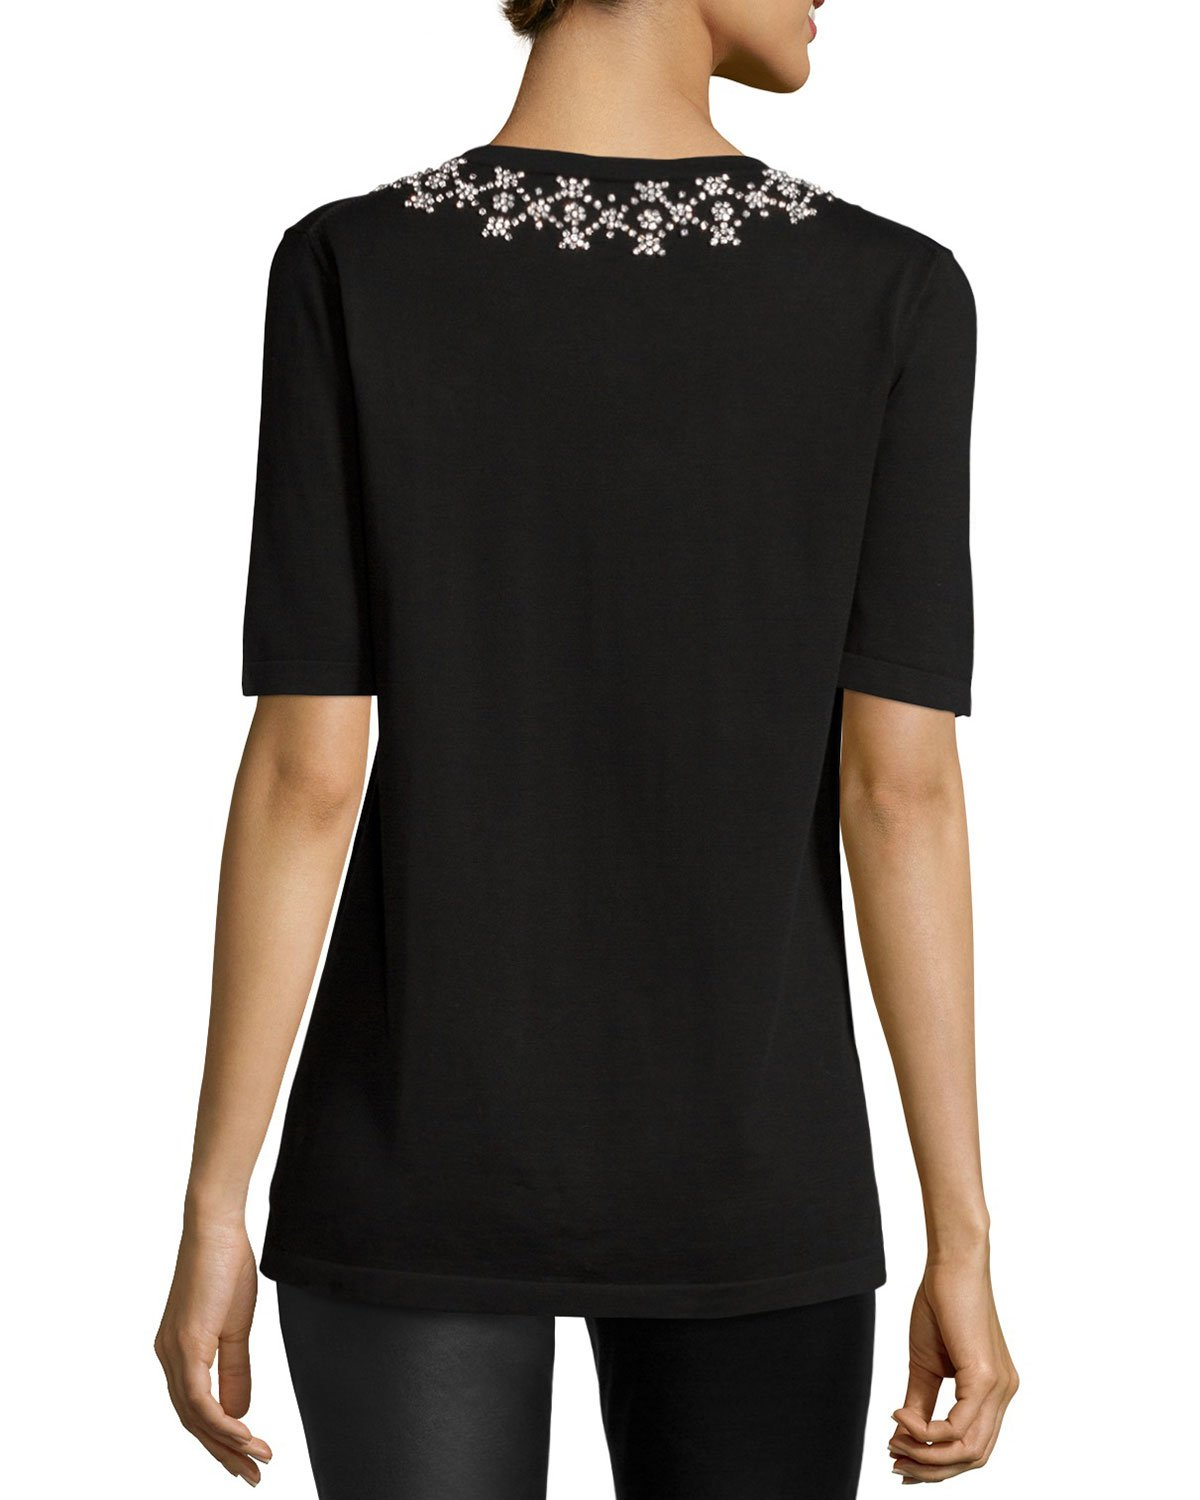 michael kors embellished neck short sleeve t shirt in black lyst. Black Bedroom Furniture Sets. Home Design Ideas